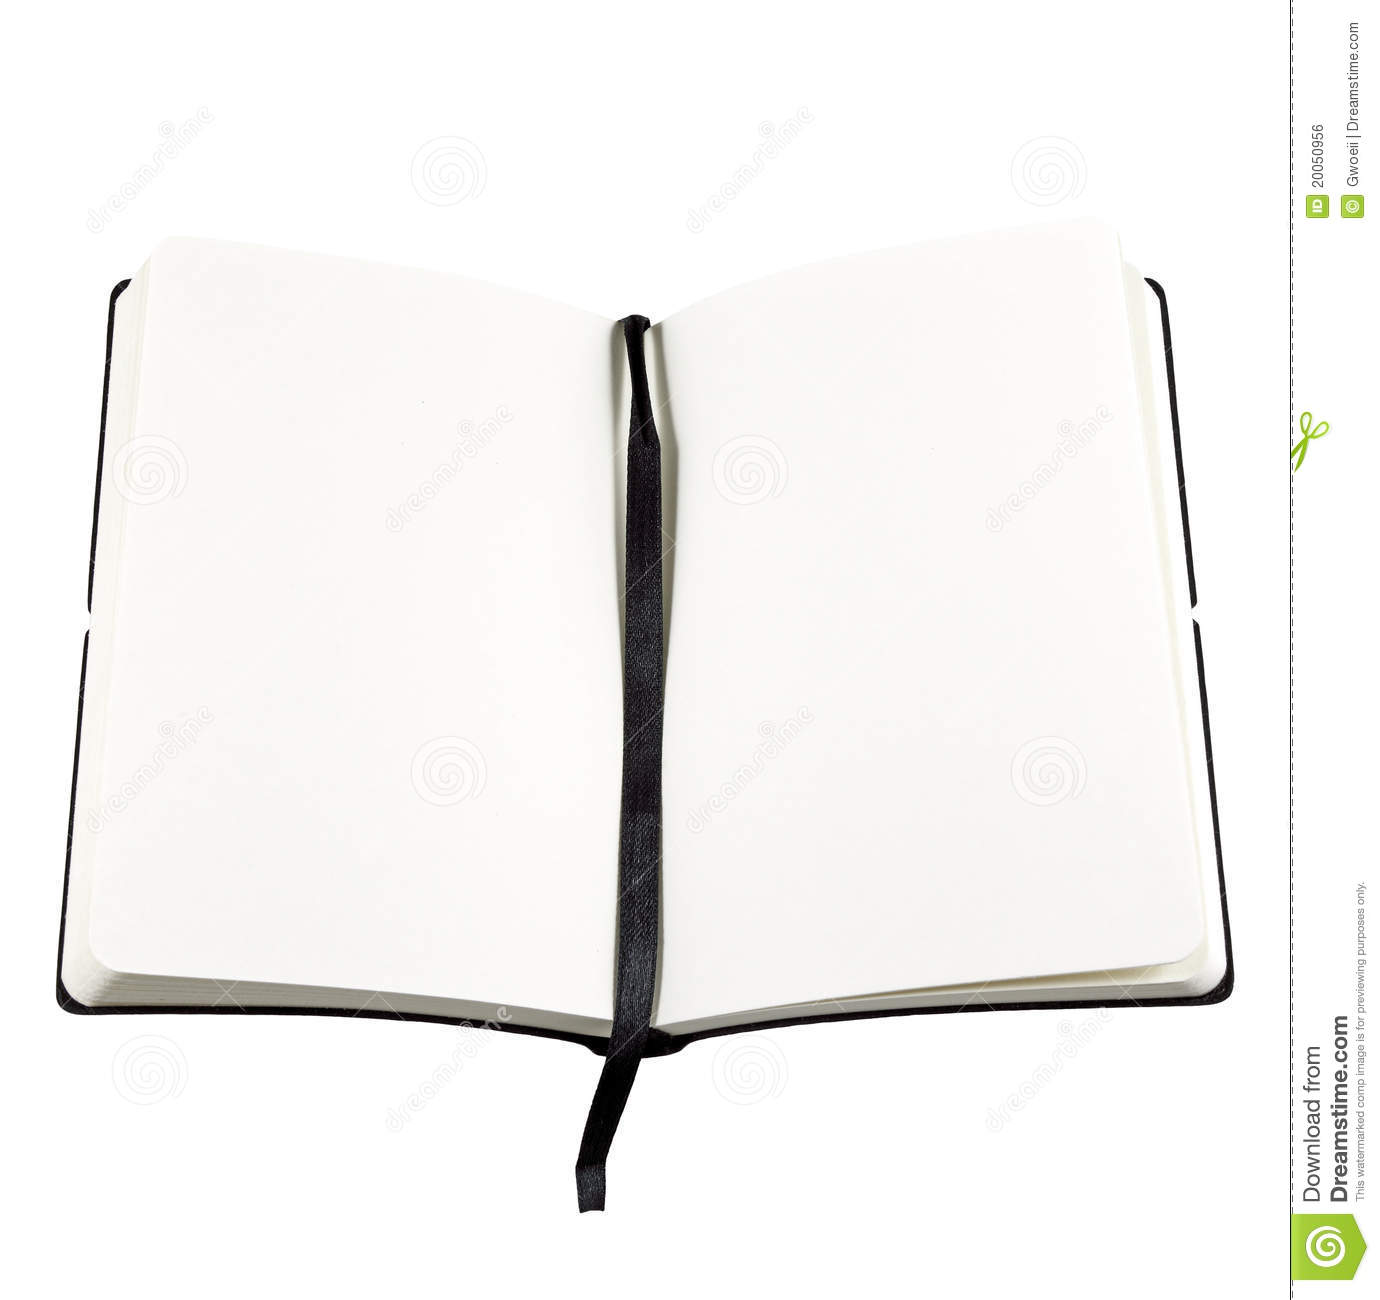 Open Book With Blank Page Royalty Free Stock Image